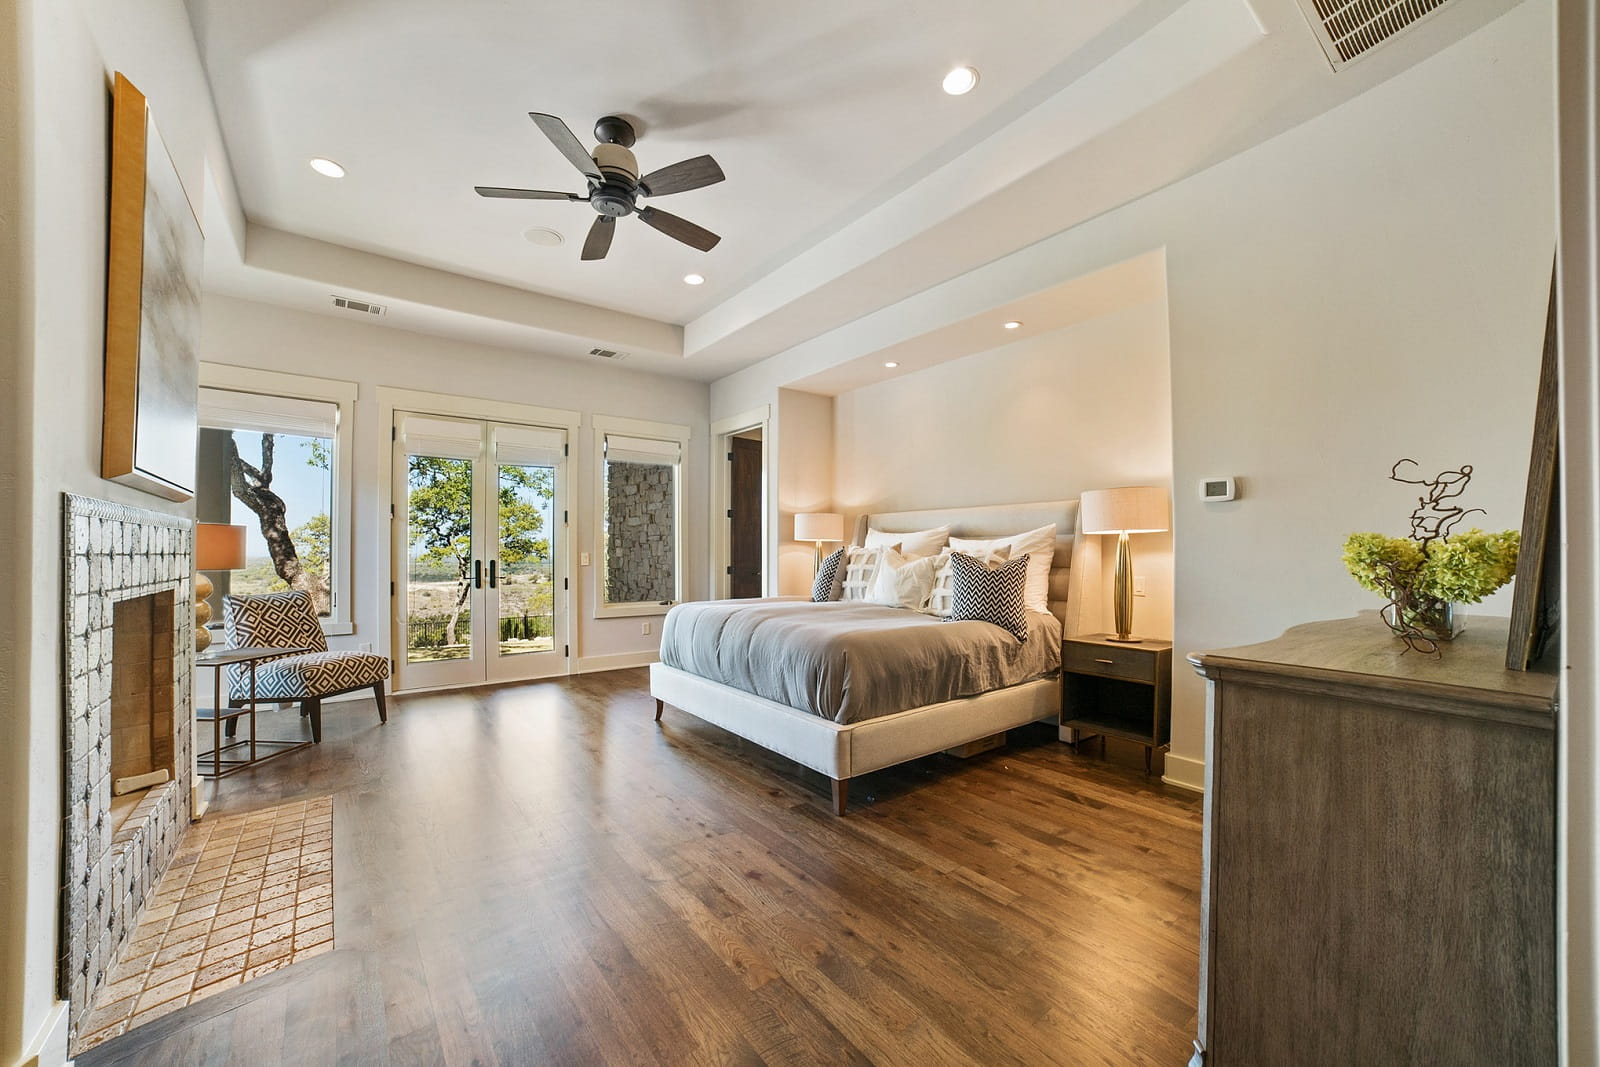 Real Estate Photography in Austin - TX - Bedroom View